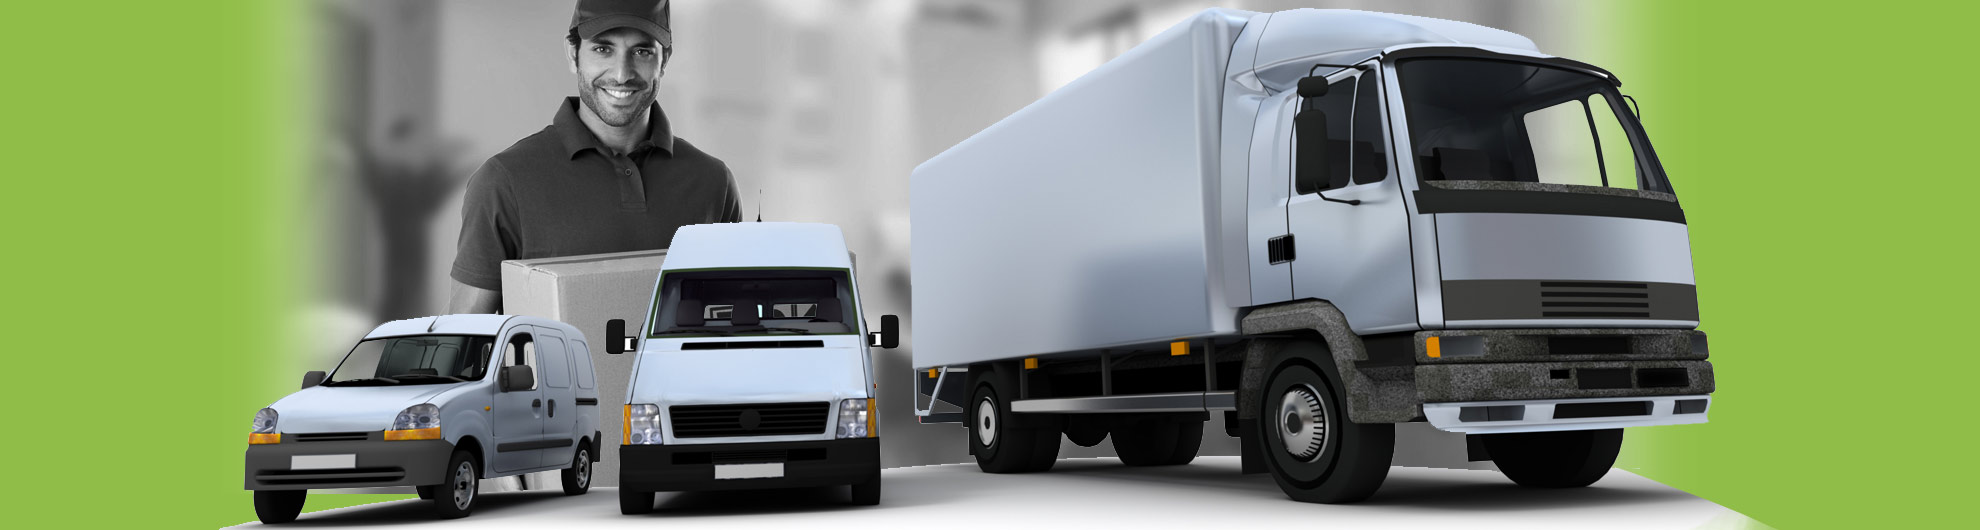 Cerkezkoy  International Movers - Shipping Companies